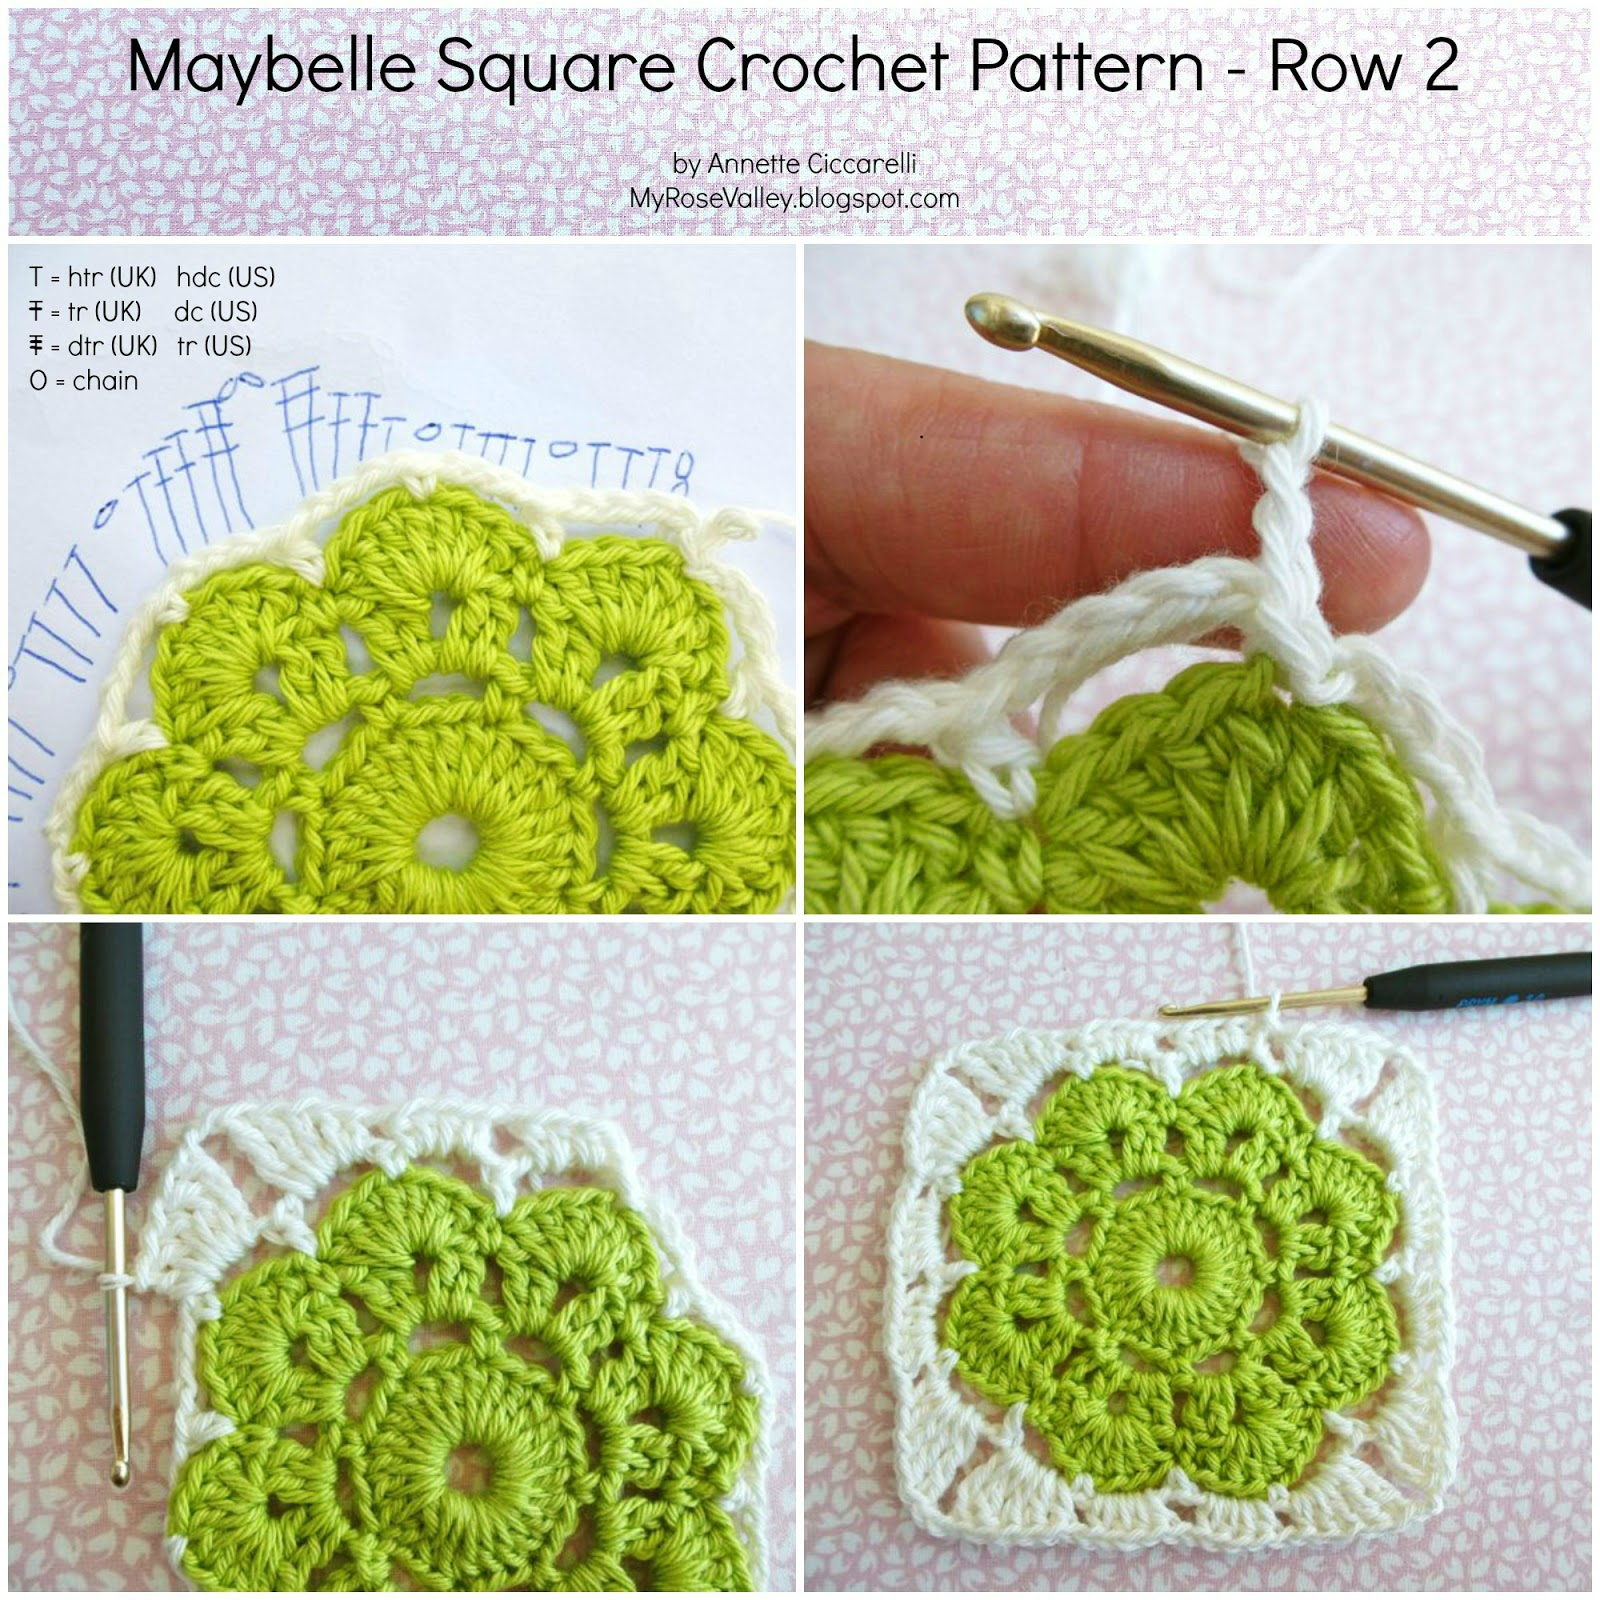 Maybelle Square Crochet Pattern CROCHET AND ART TUTORIAL